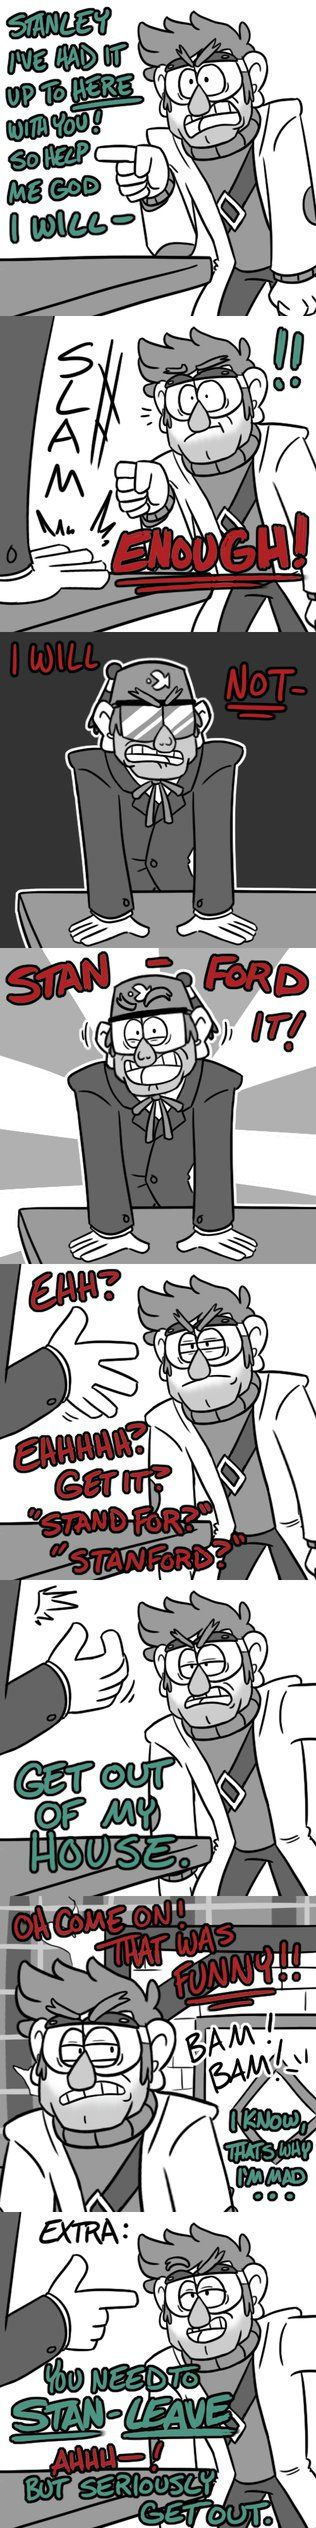 The Pines twins puns XD